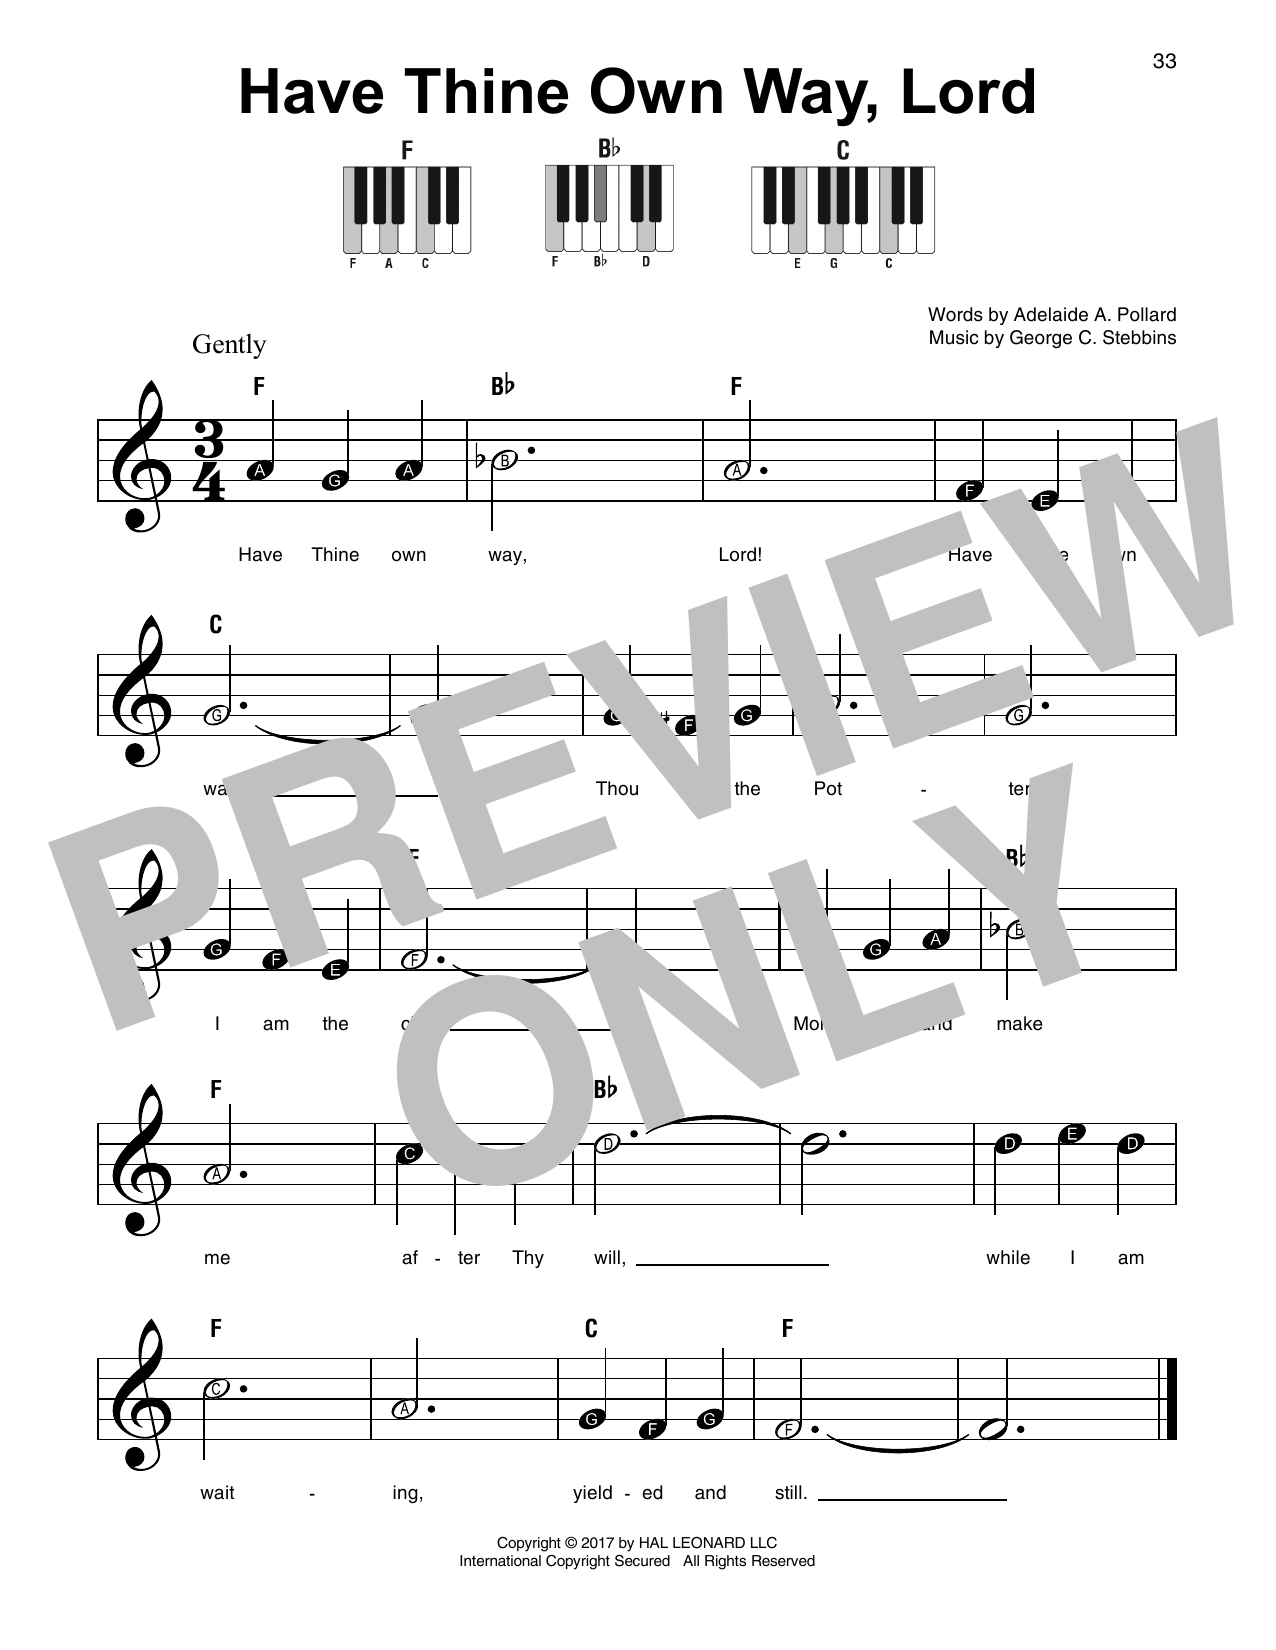 Have Thine Own Way, Lord Sheet Music